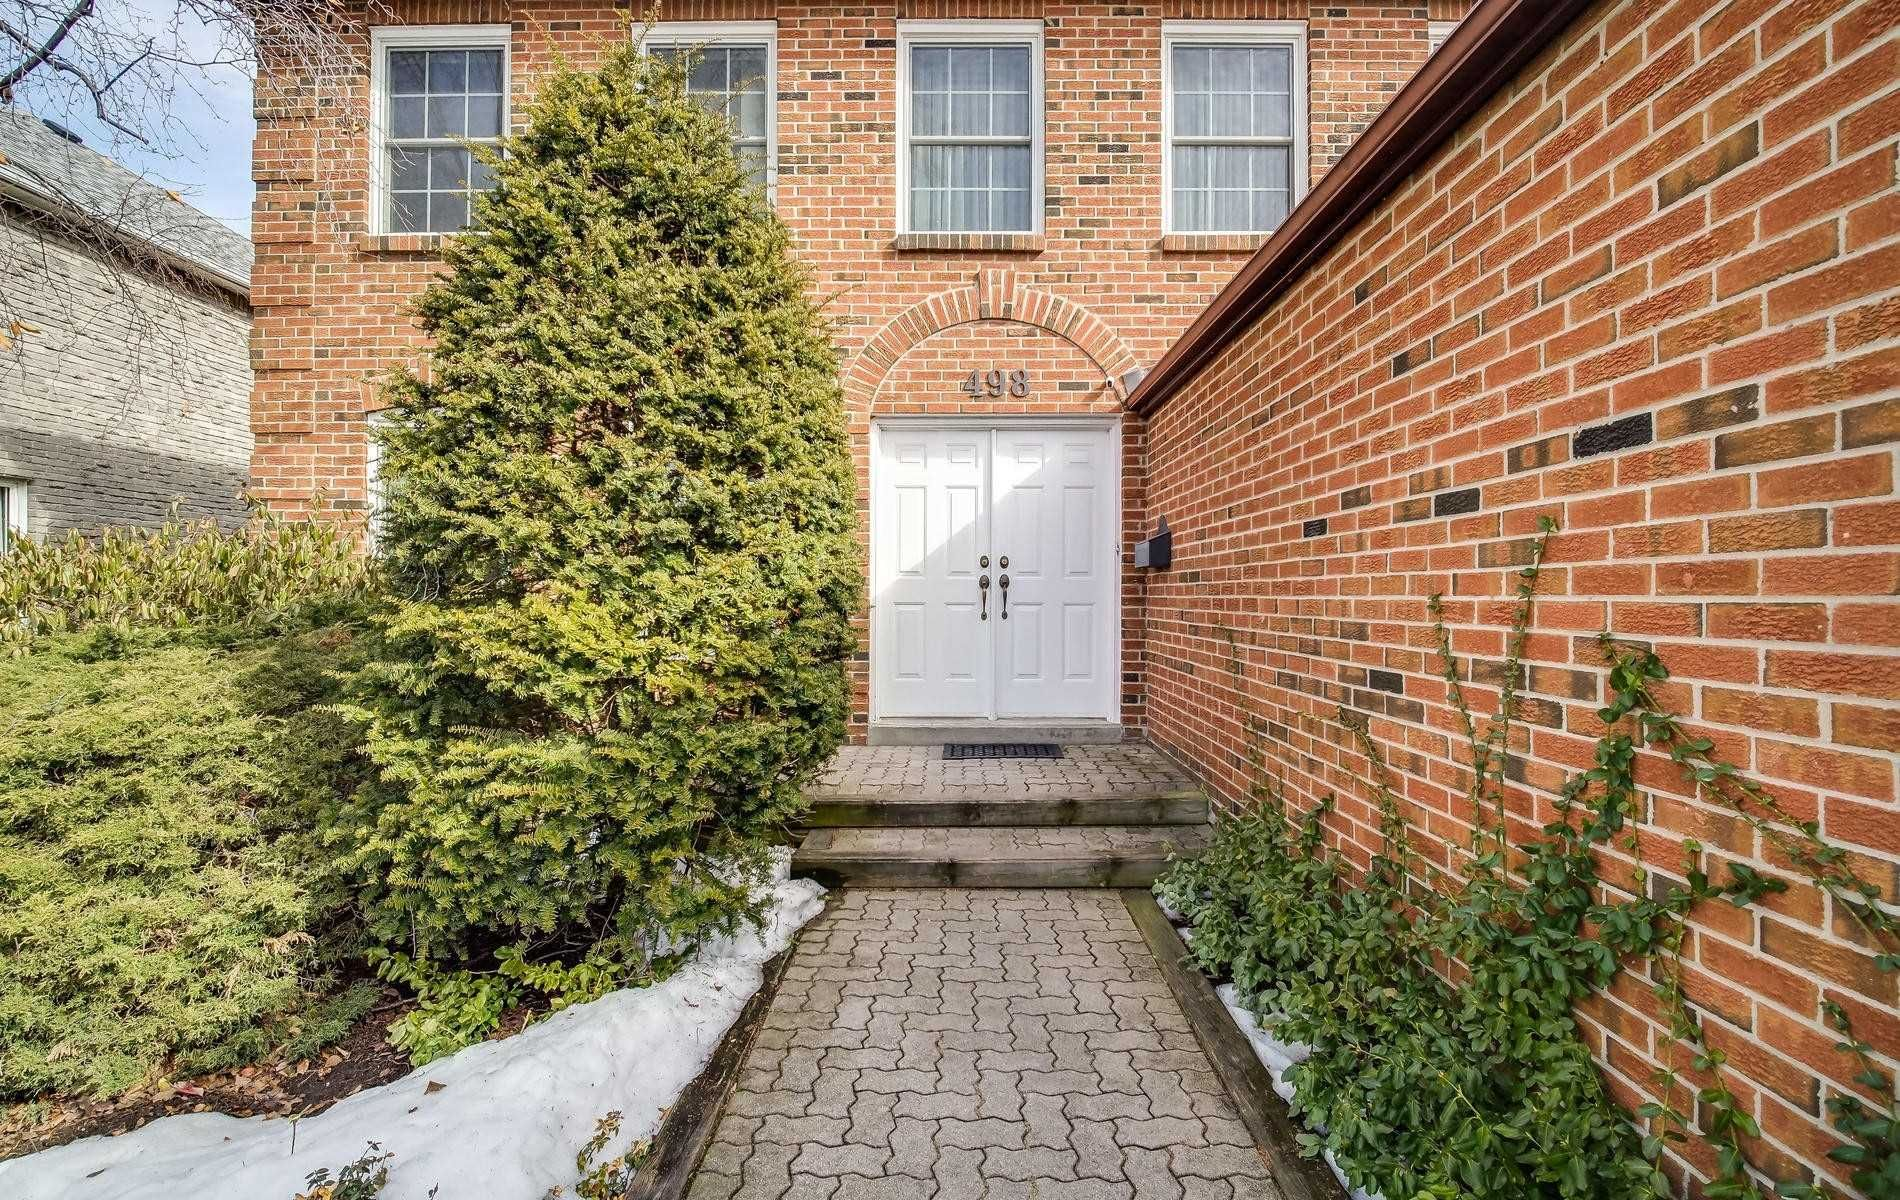 Photo 2: Photos: 498 Hidden Trail in Toronto: Westminster-Branson House (2-Storey) for sale (Toronto C07)  : MLS®# C4709173